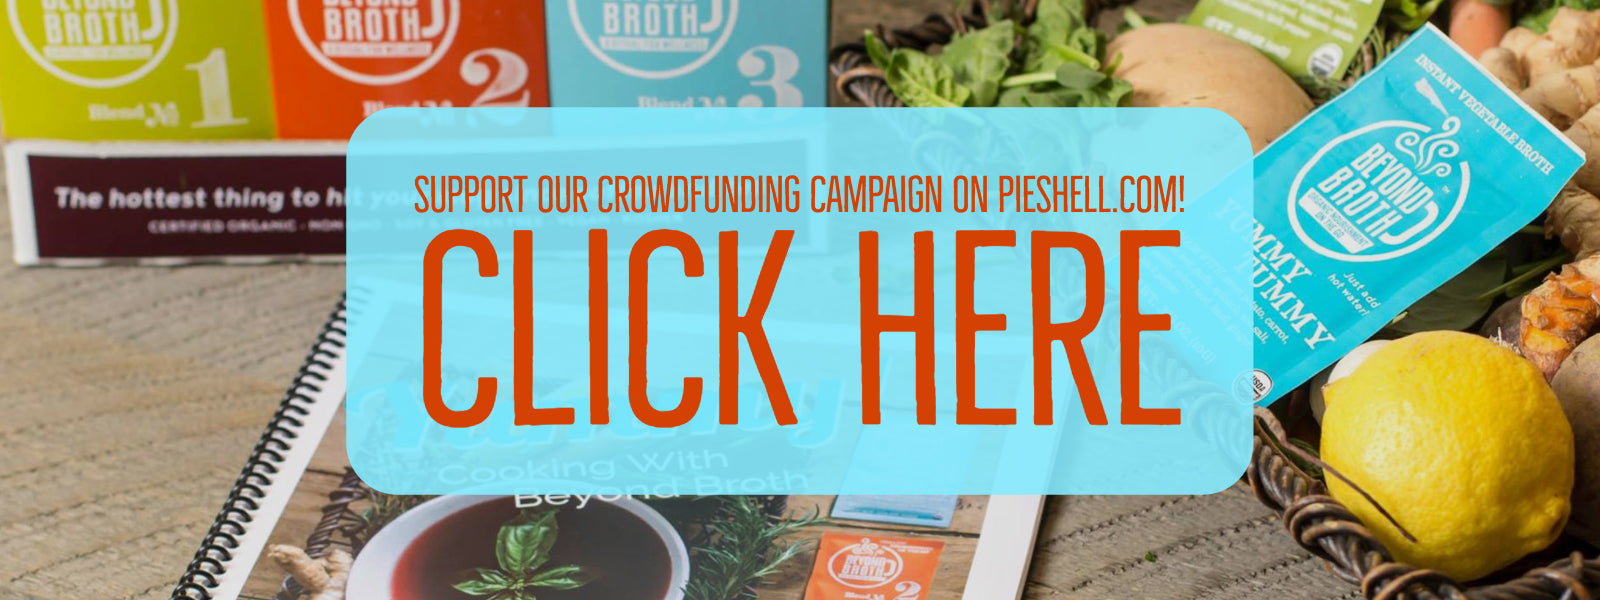 Support our PieShell.com Crowdfunding Campaign!